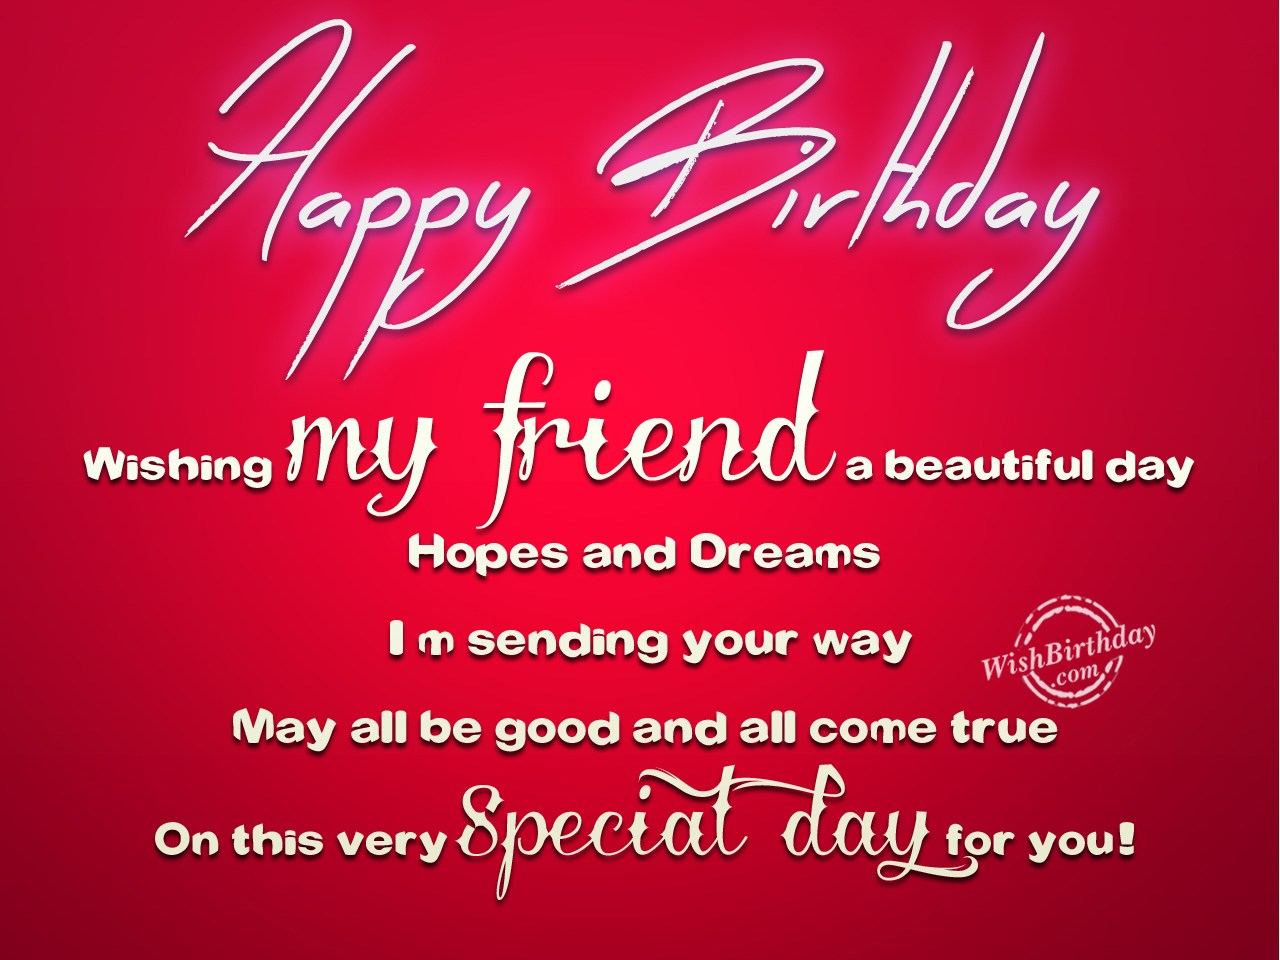 Birthday Wishes For Best Friend Birthday Images Pictures Wishing A Friend Happy Birthday On